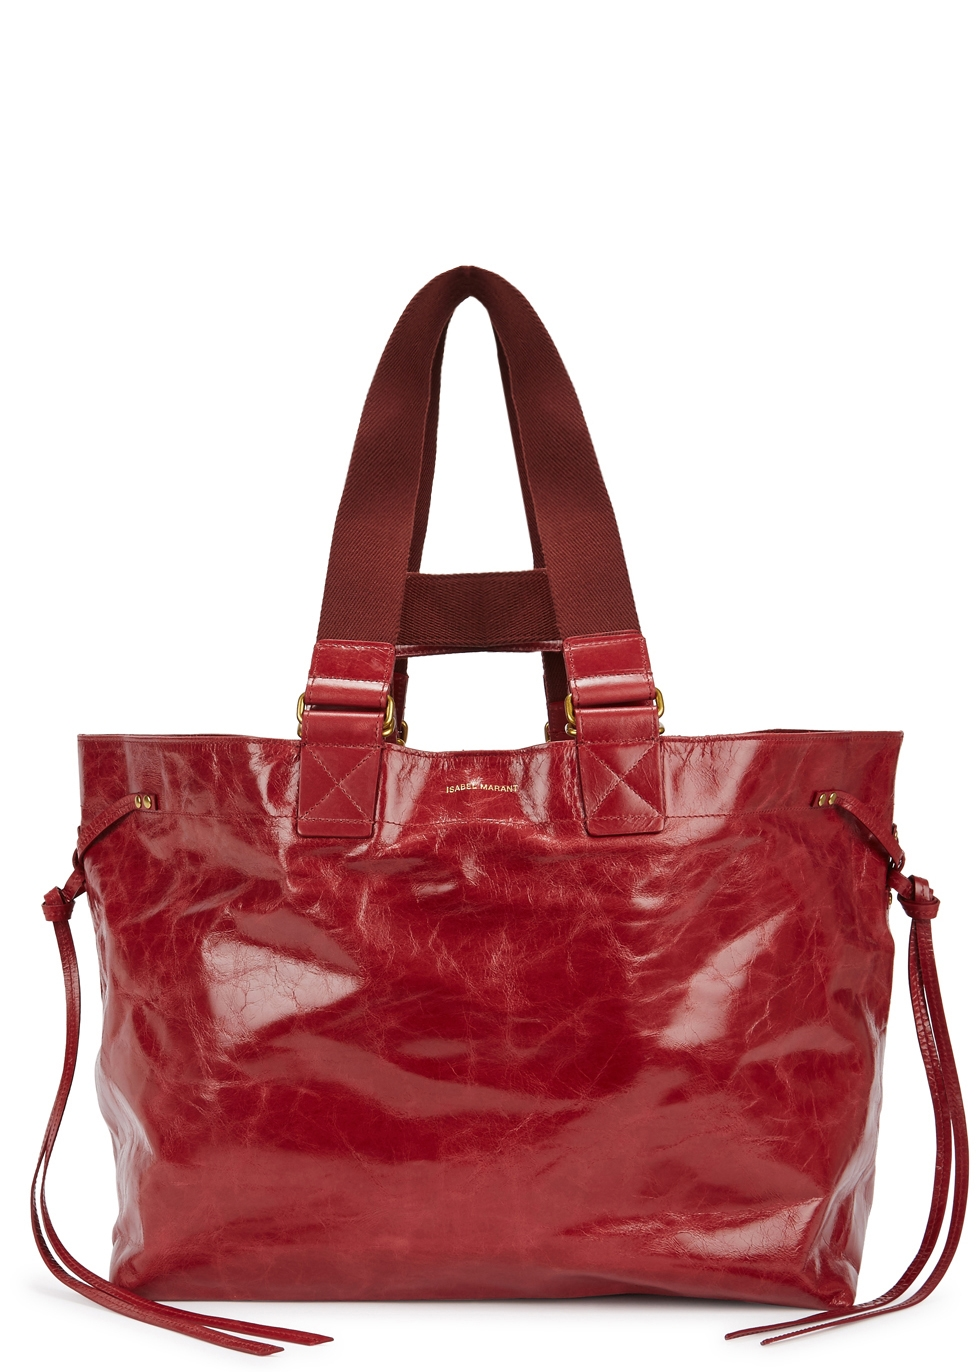 ISABEL MARANT WARDY RED GLOSSED LEATHER TOTE